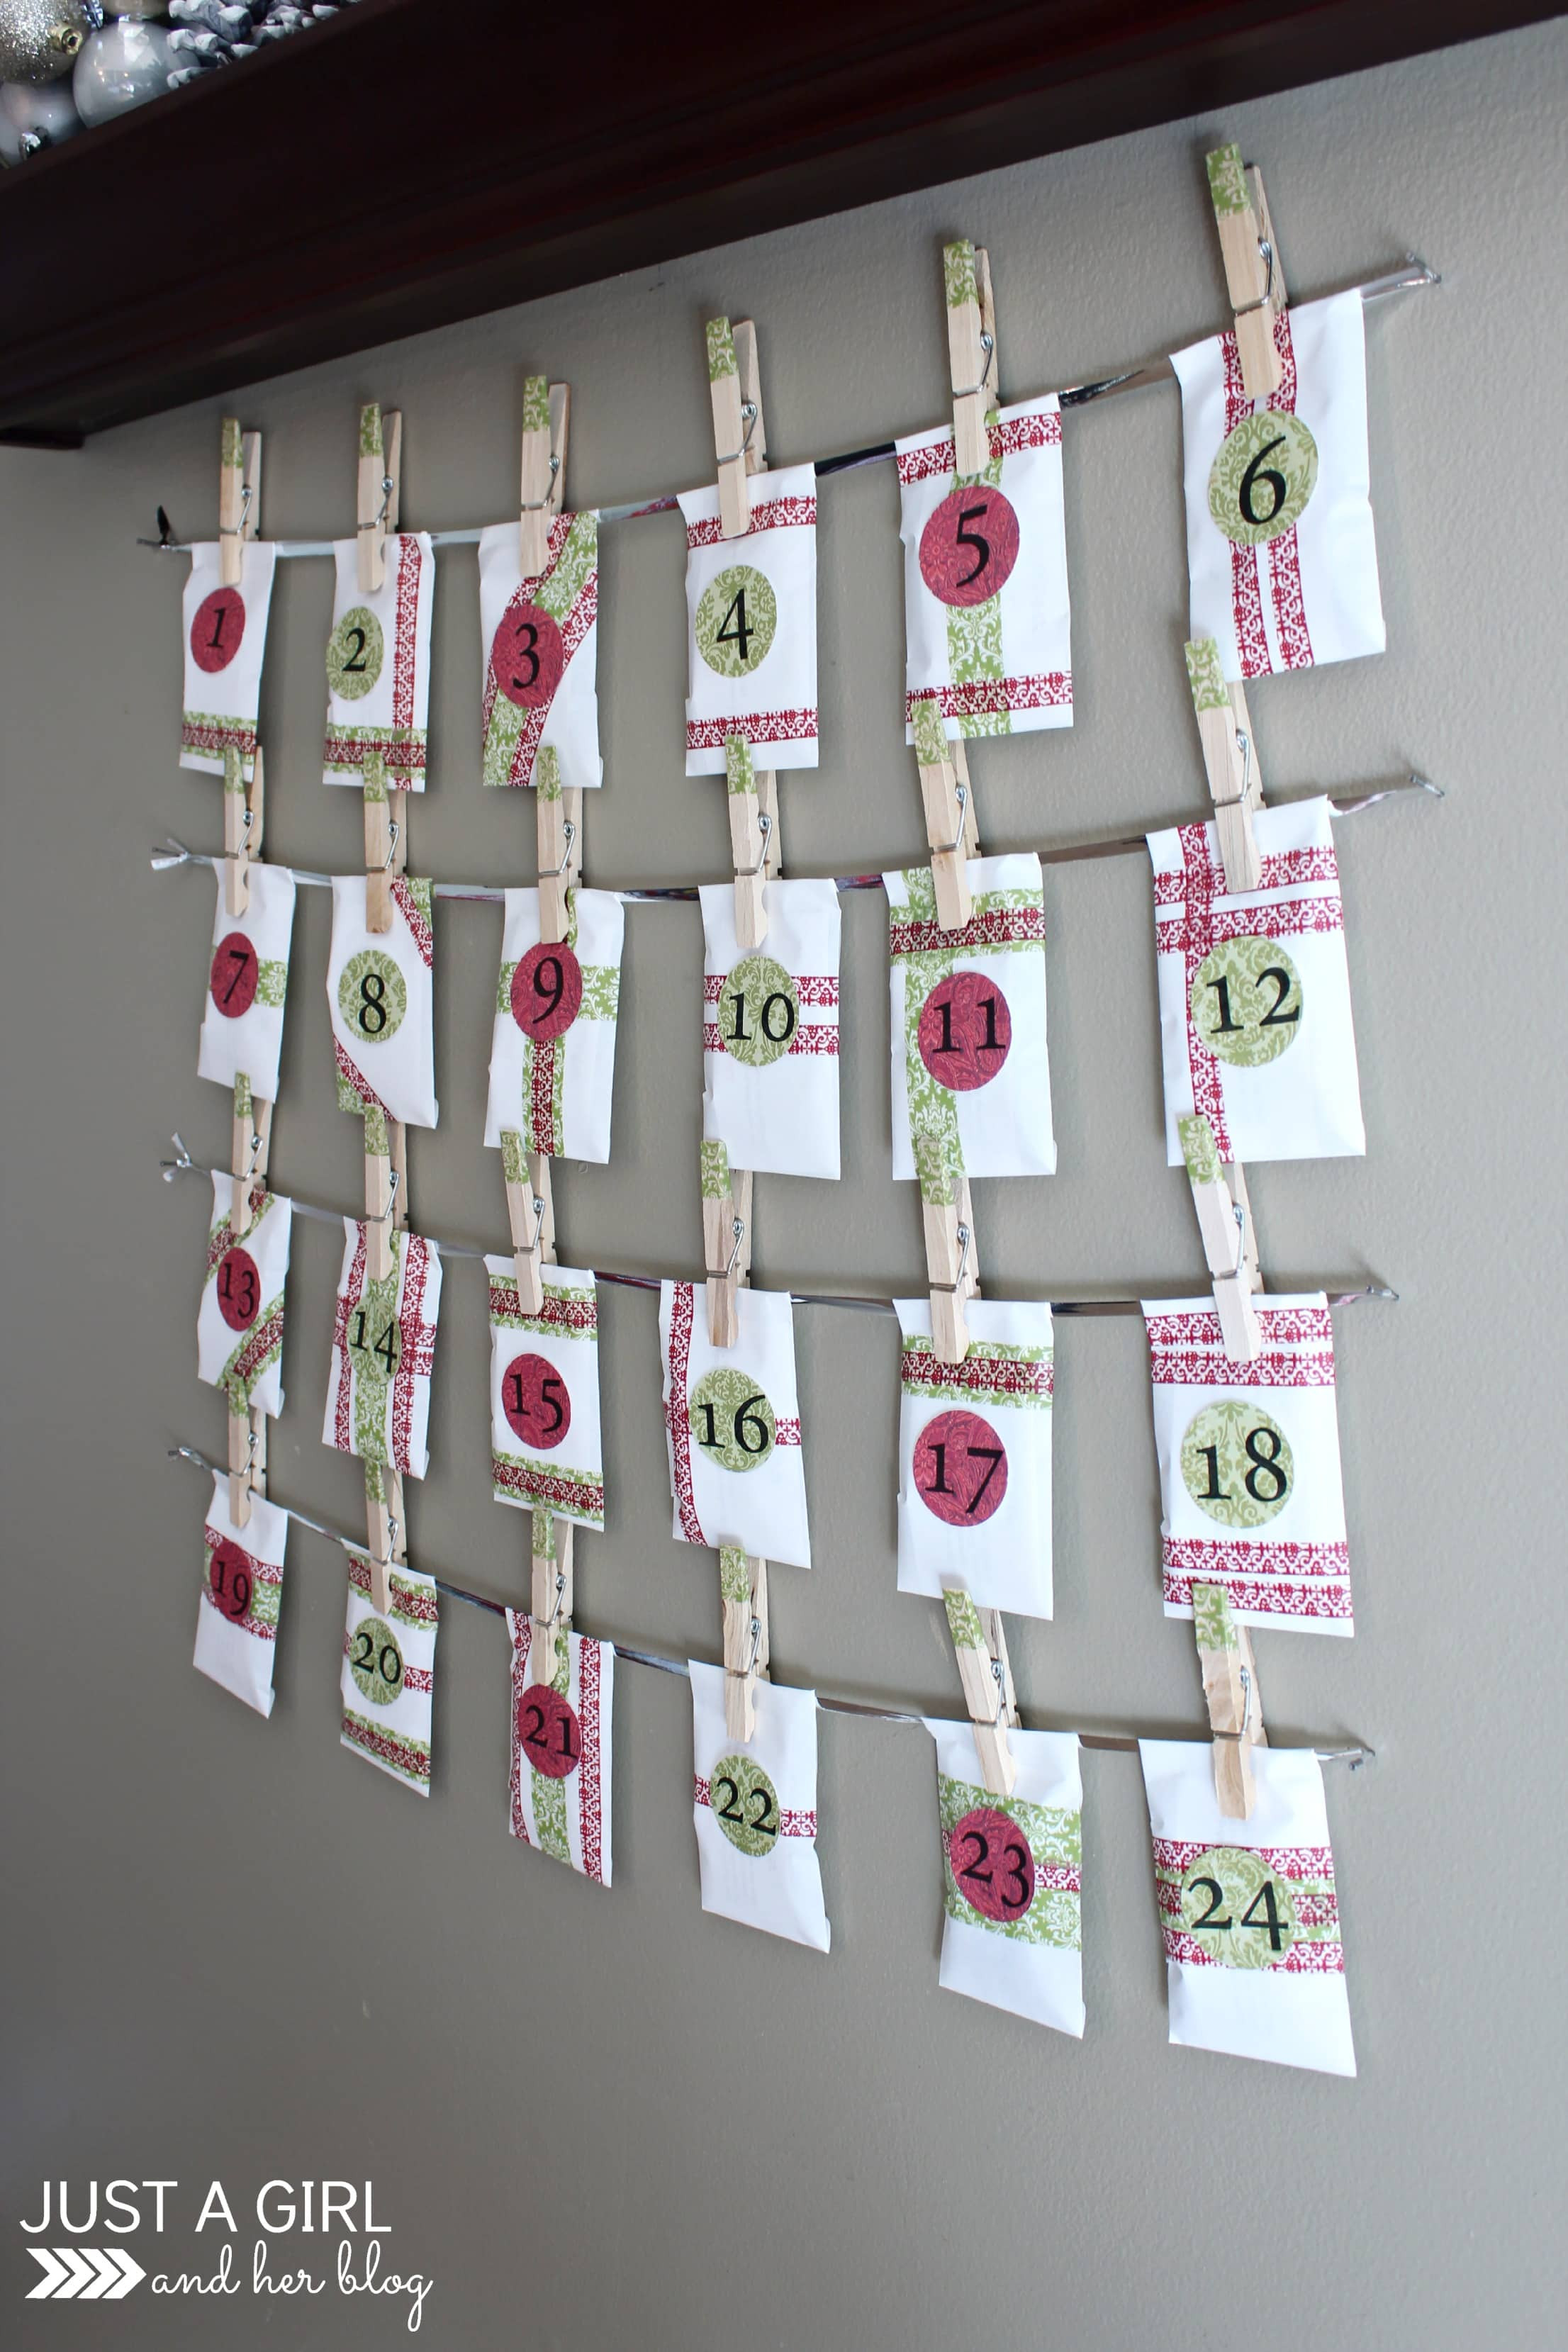 Best ideas about Advent Calendar DIY . Save or Pin Our DIY Advent Calendar with FREE Printables  Just a Now.